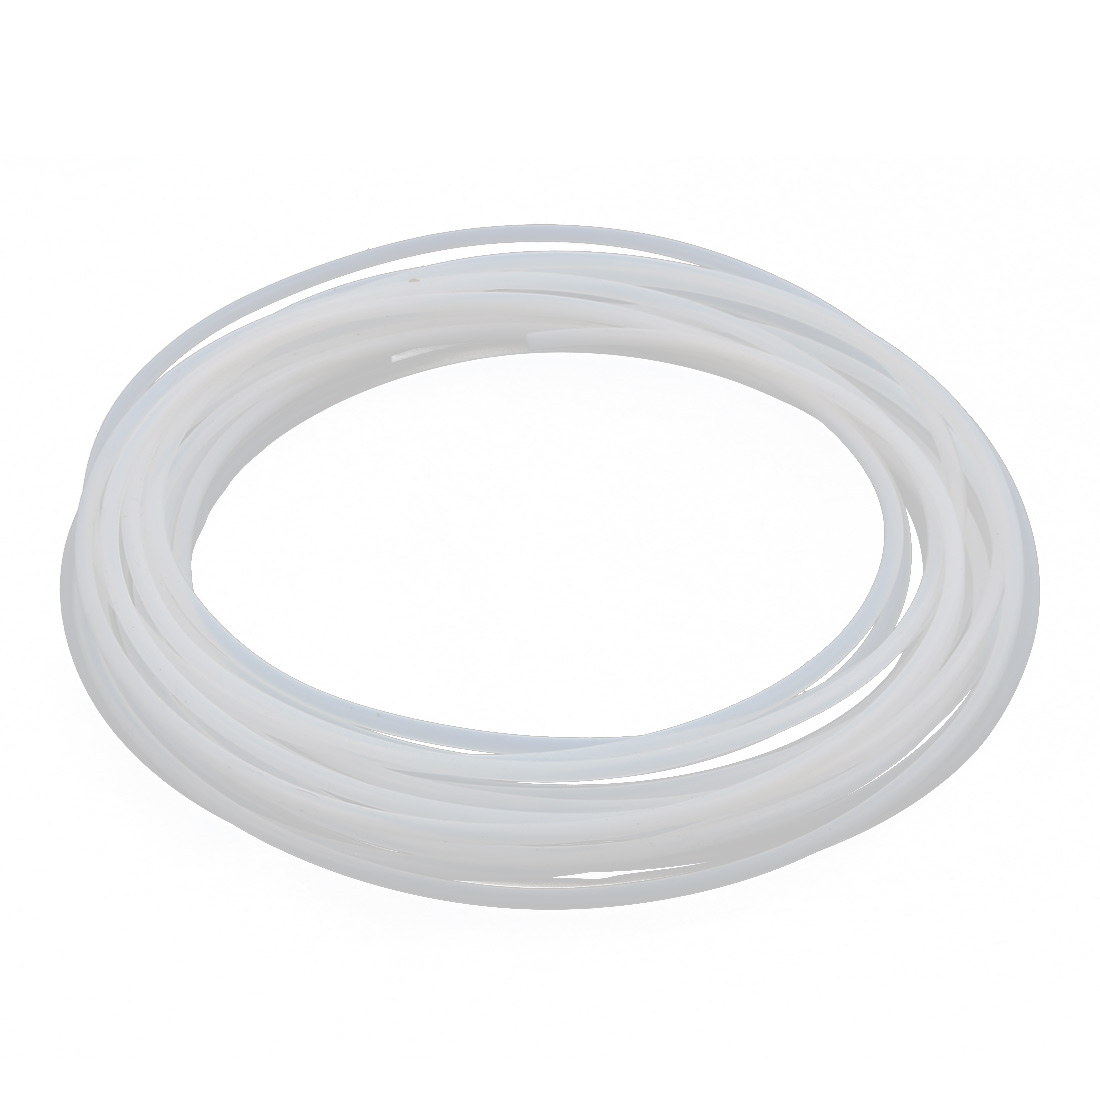 3.38mmx3.78mm PTFE Resistant High Temperature Transparent Tubing 10Meters 32.8Ft